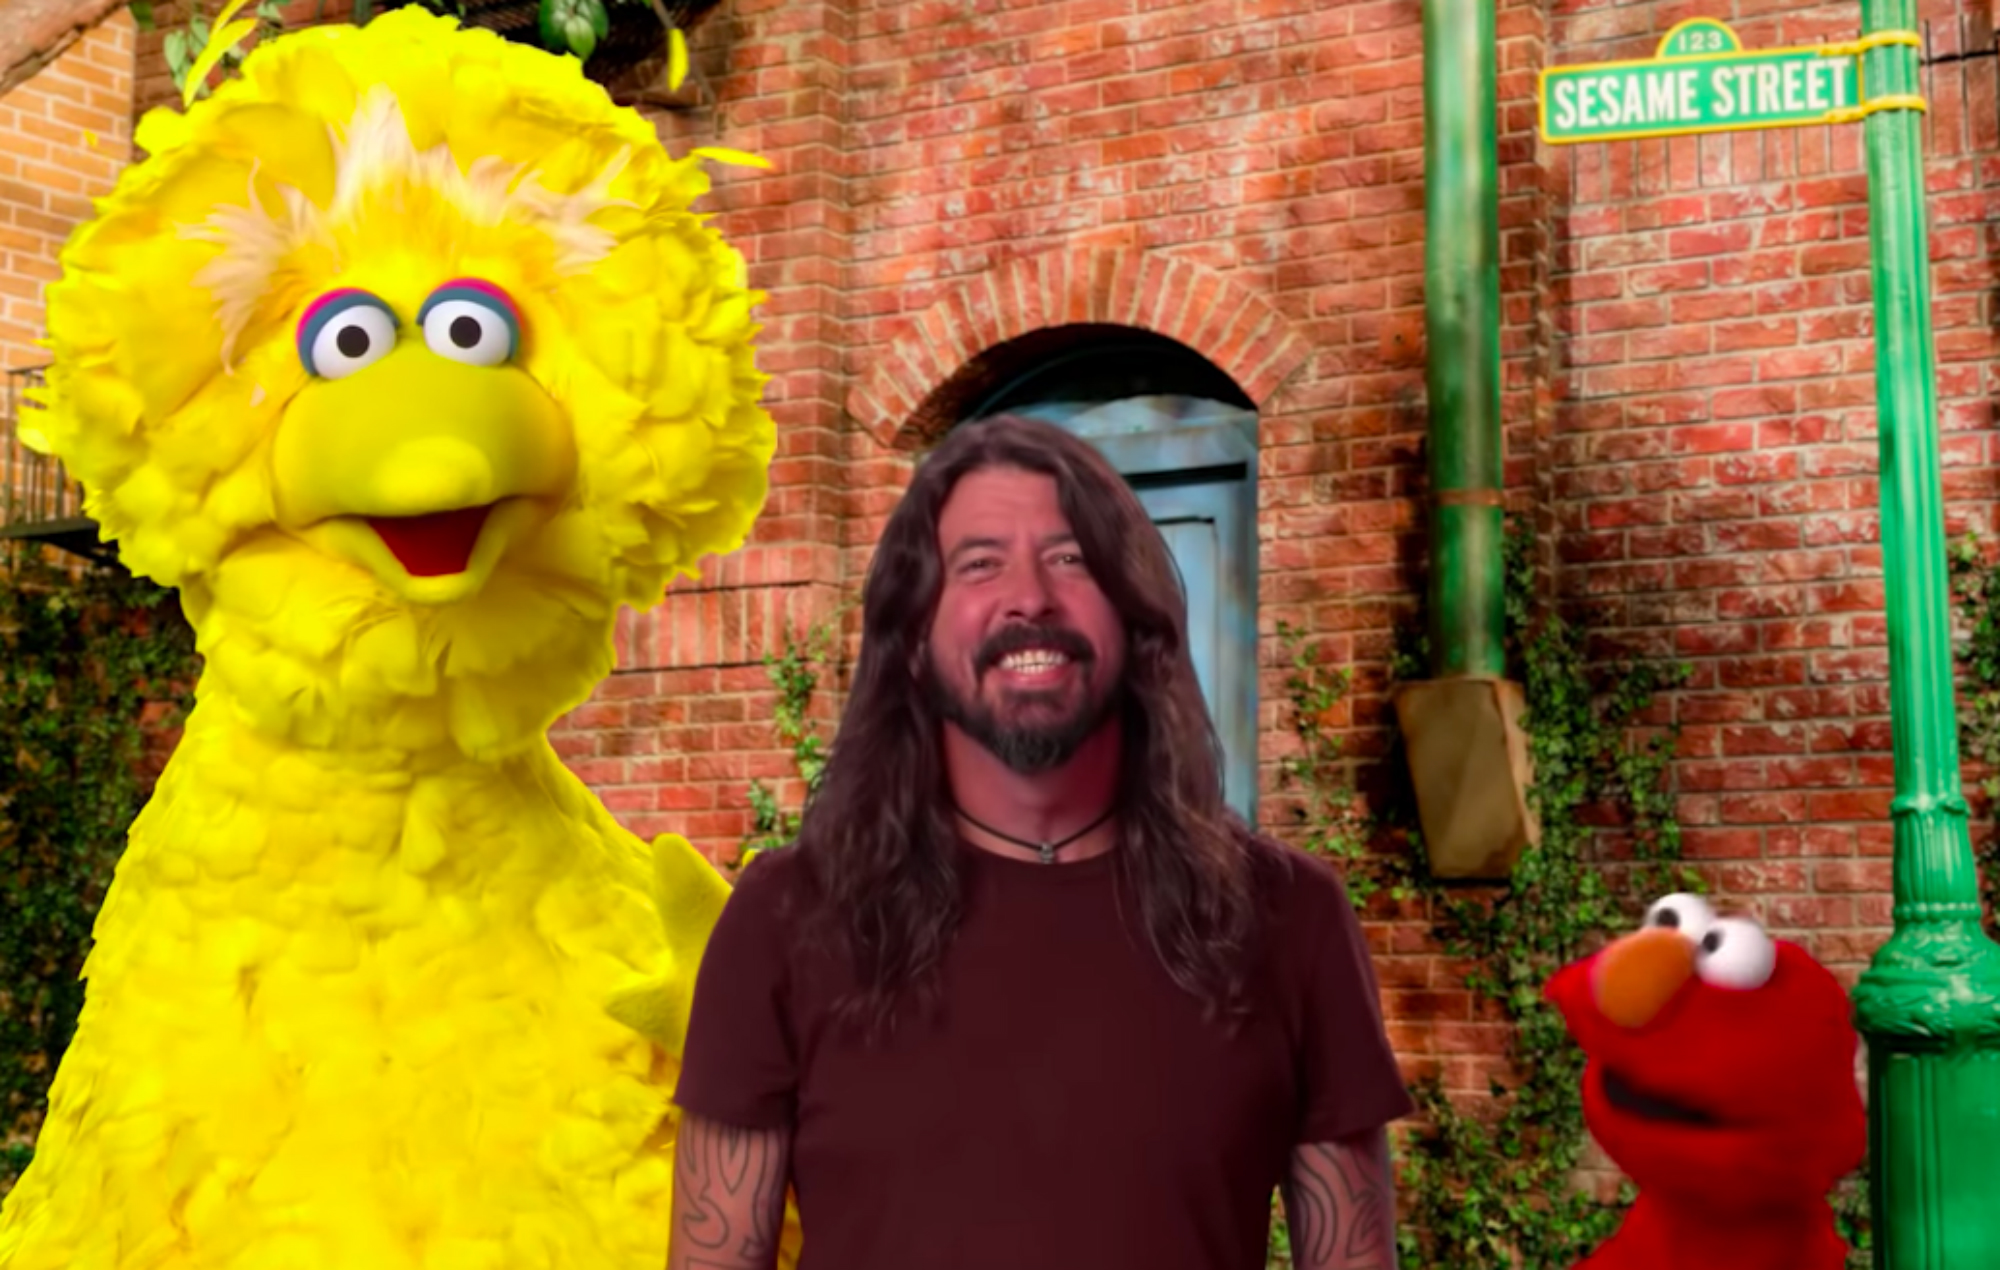 Watch Dave Grohl perform the wholesome 'Here We Go Song' on 'Sesame Street'